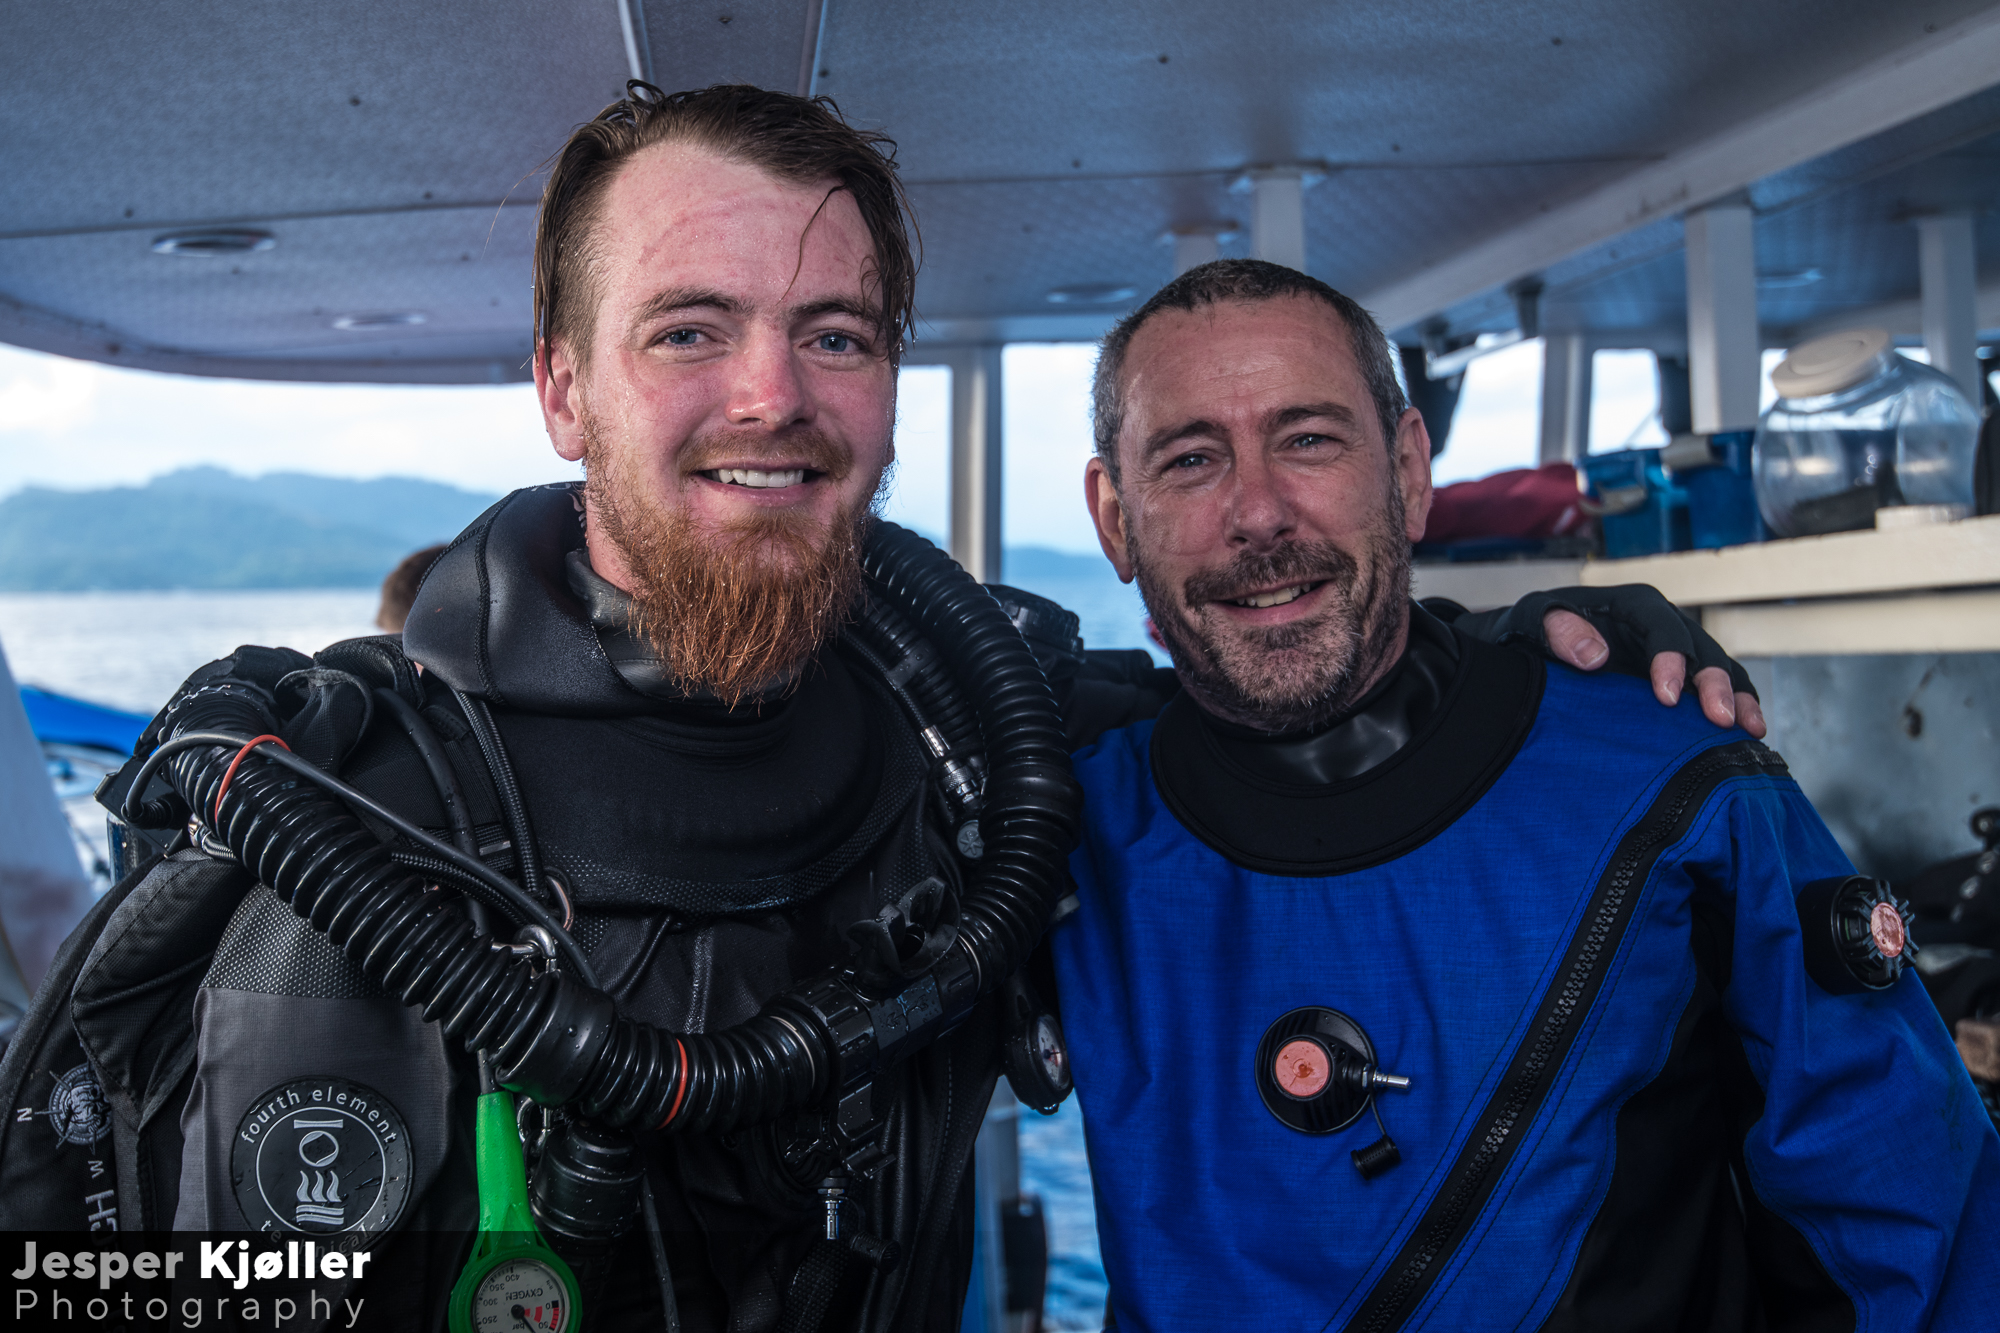 WE SPEAK YOUR LANGUAGE - Liveaboard travel has historically been a vending machine experience. Our mission statement is to change the way technical divers experience and travel on vessels around the world!